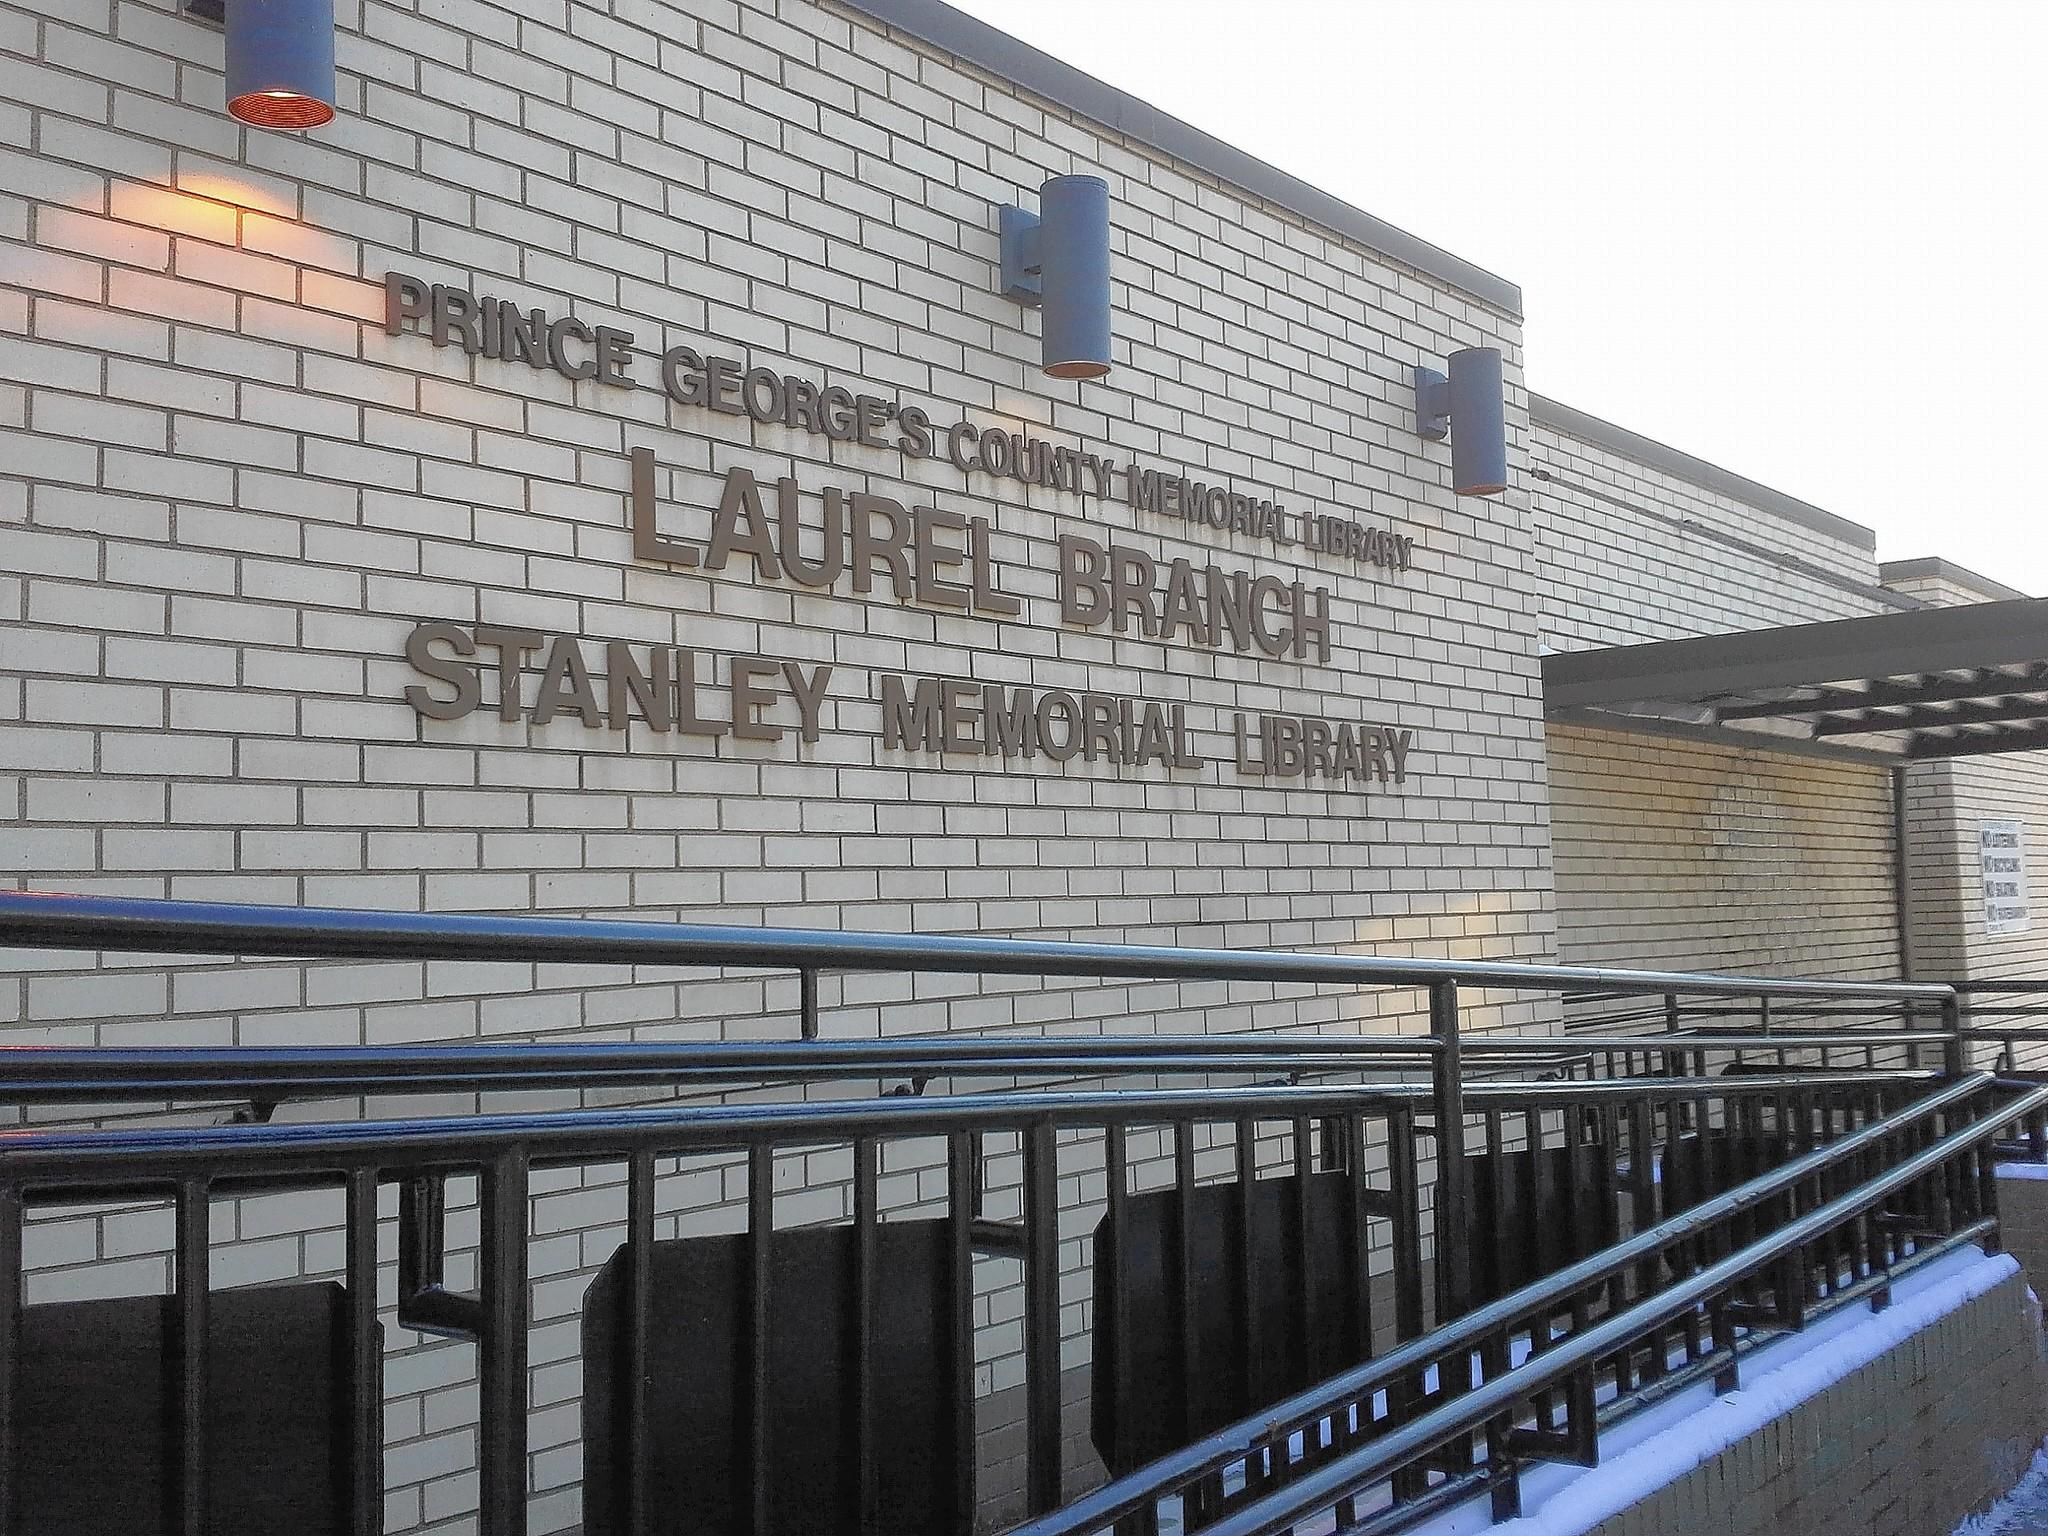 """The Laurel library was named """"Stanley Memorial Library"""" as directed in the deed giving the land from the Stanley family."""